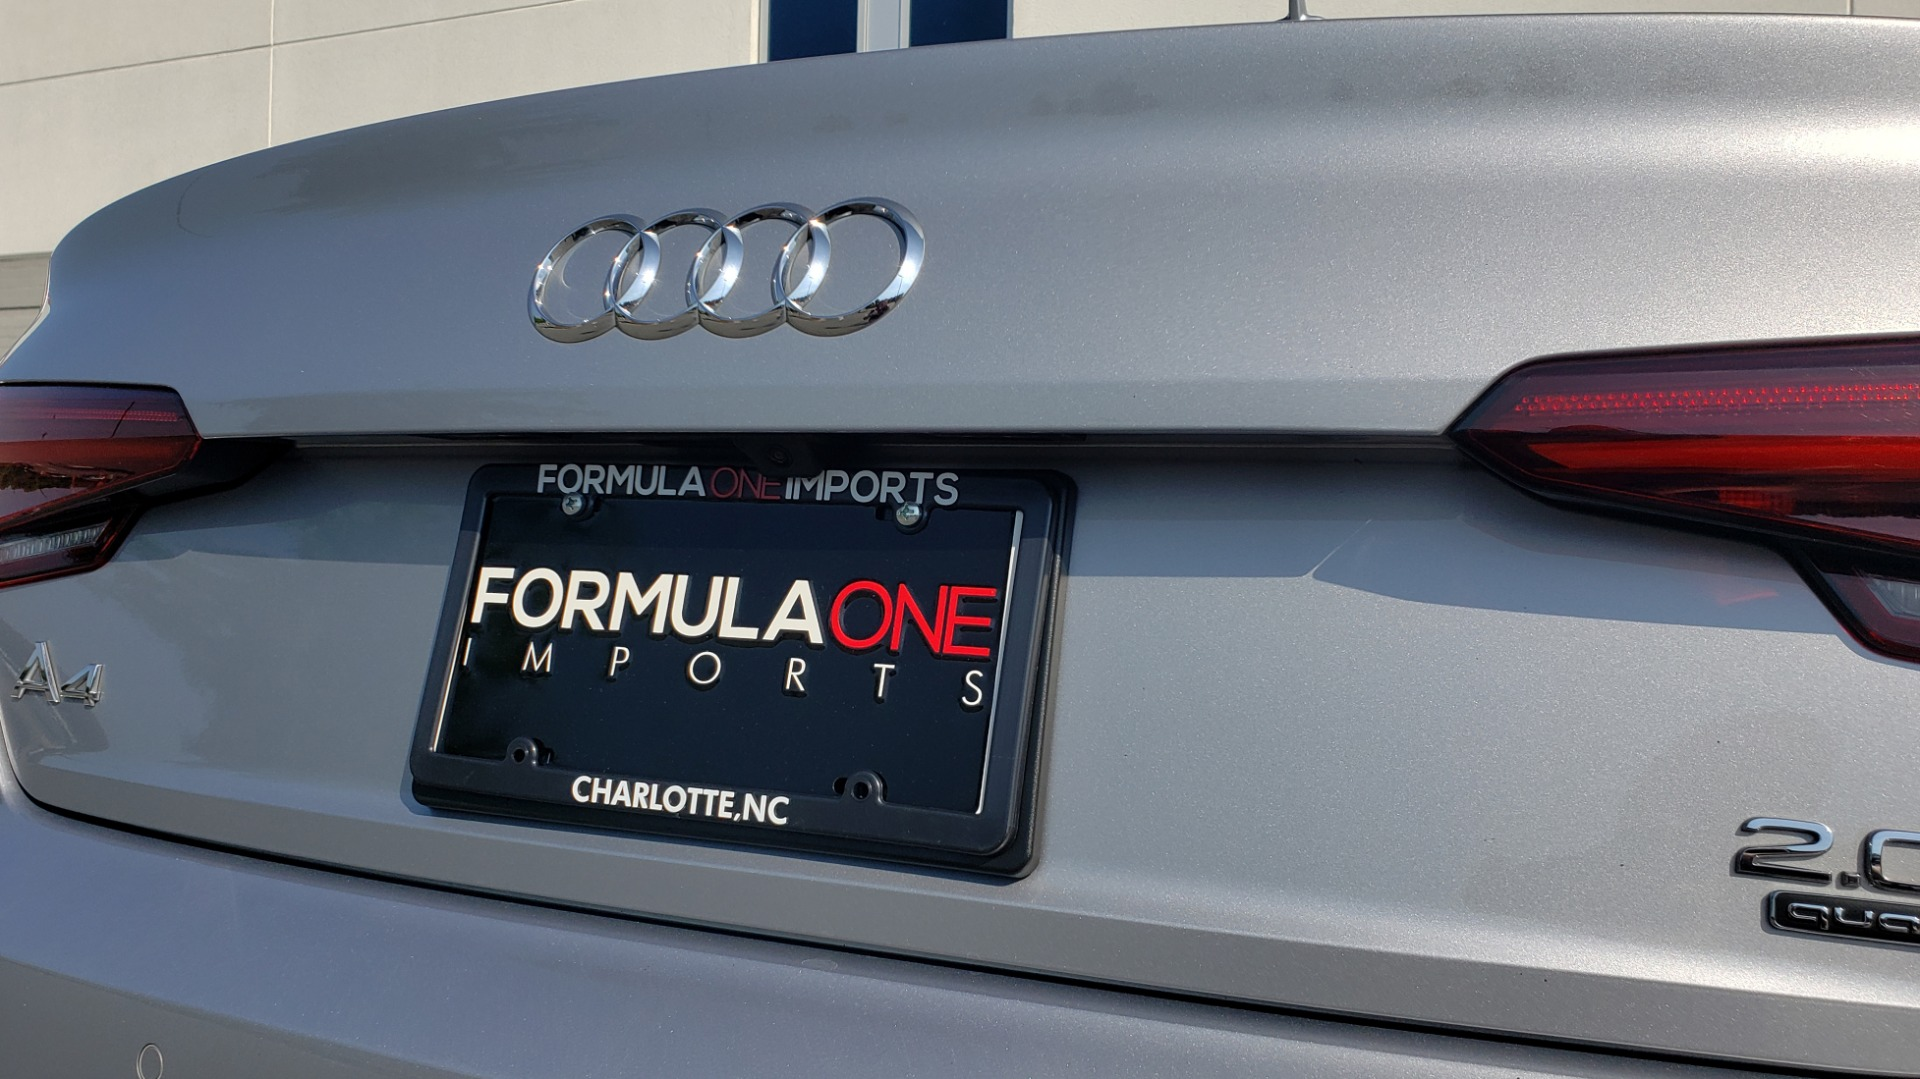 Used 2018 Audi A4 PREMIUM PLUS 2.0T / NAV / SUNROOF / B&O SND / CLD WTHR / REARVIEW for sale $29,395 at Formula Imports in Charlotte NC 28227 31